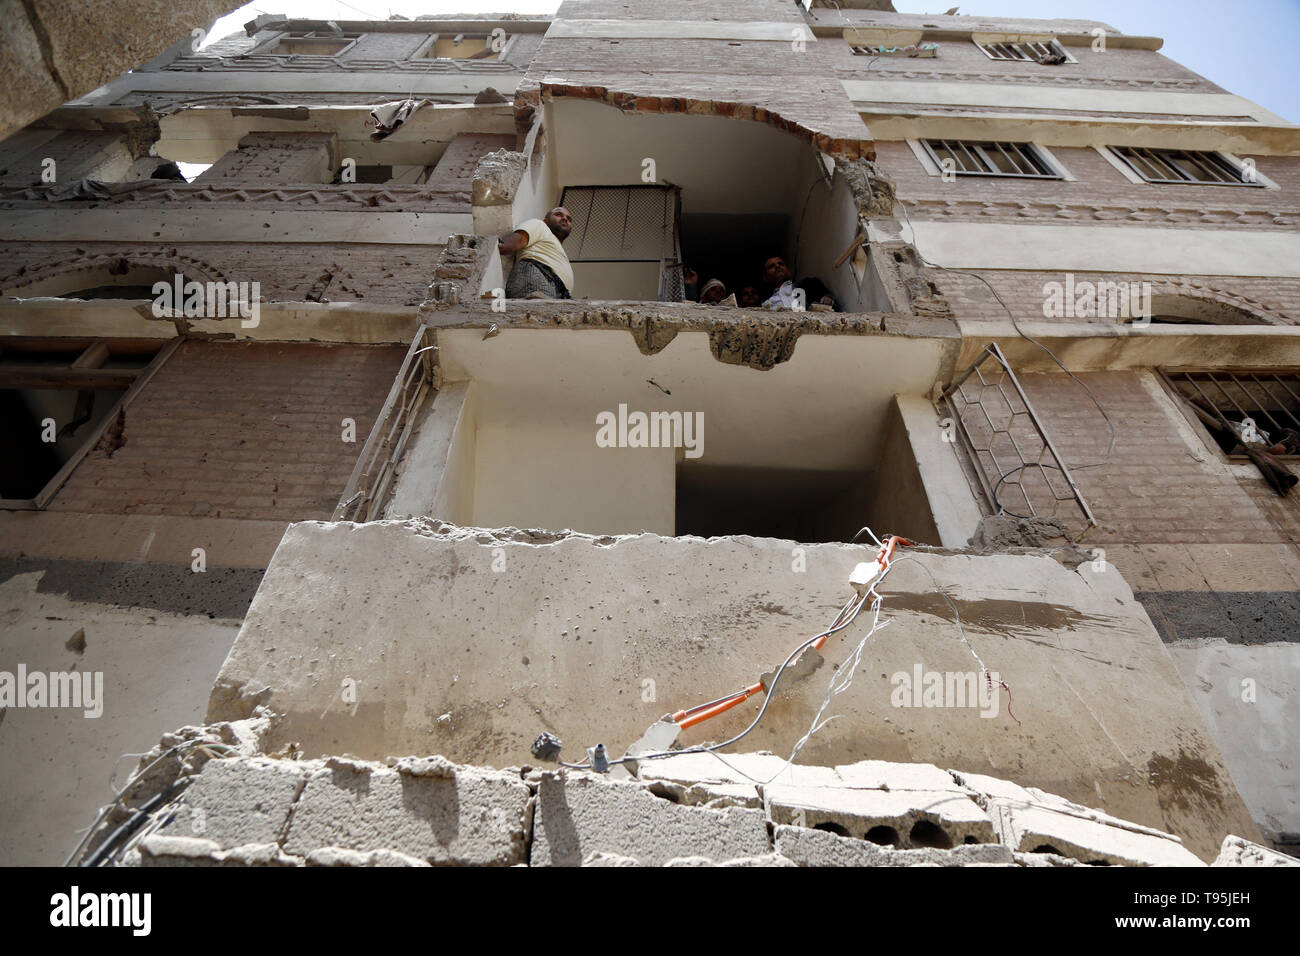 Sanaa, Yemen. 16th May 2019. Photo taken on May 16, 2019 shows a damaged house after an airstrike hit by the Saudi Arabia-led coalition in Sanaa, capital of Yemen. The Saudi Arabia-led coalition launched airstrikes on Houthi rebels' targets in the Yemeni capital Sanaa on Thursday morning, causing civilian casualties and damages, authorities and local residents said. Credit: Xinhua/Alamy Live News - Stock Image